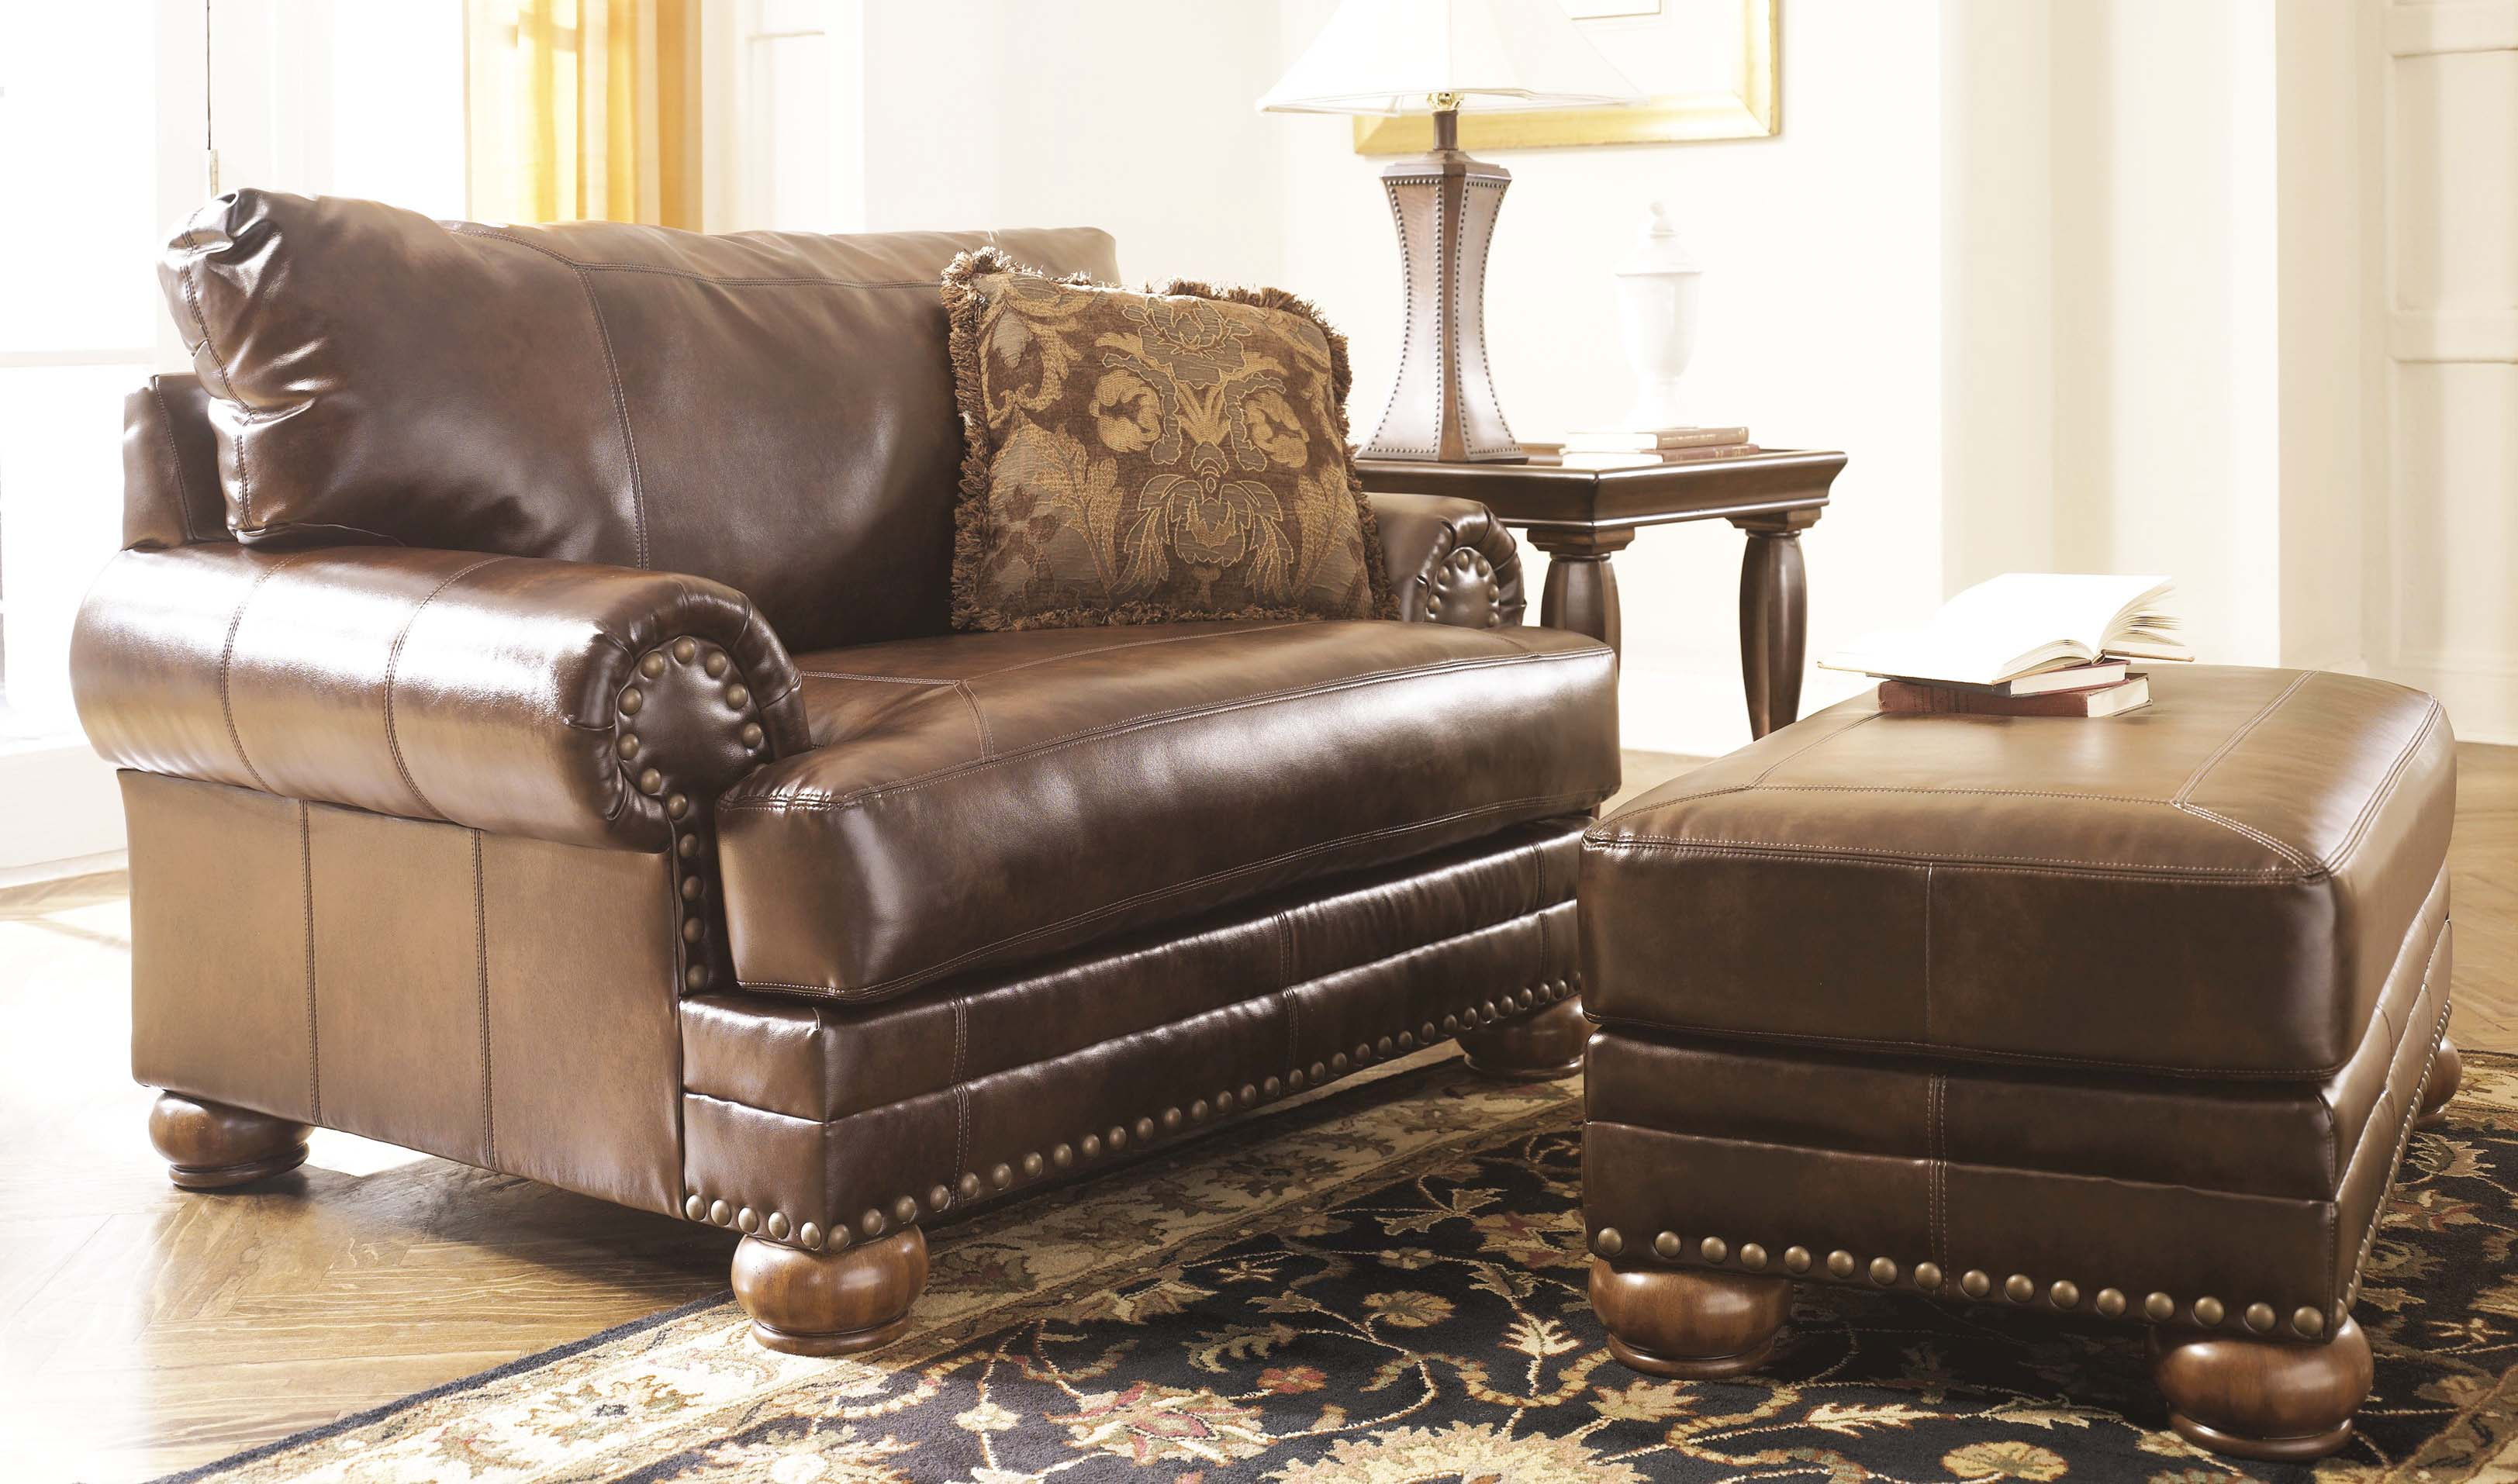 How to decorate living room with leather chair ottoman roy home